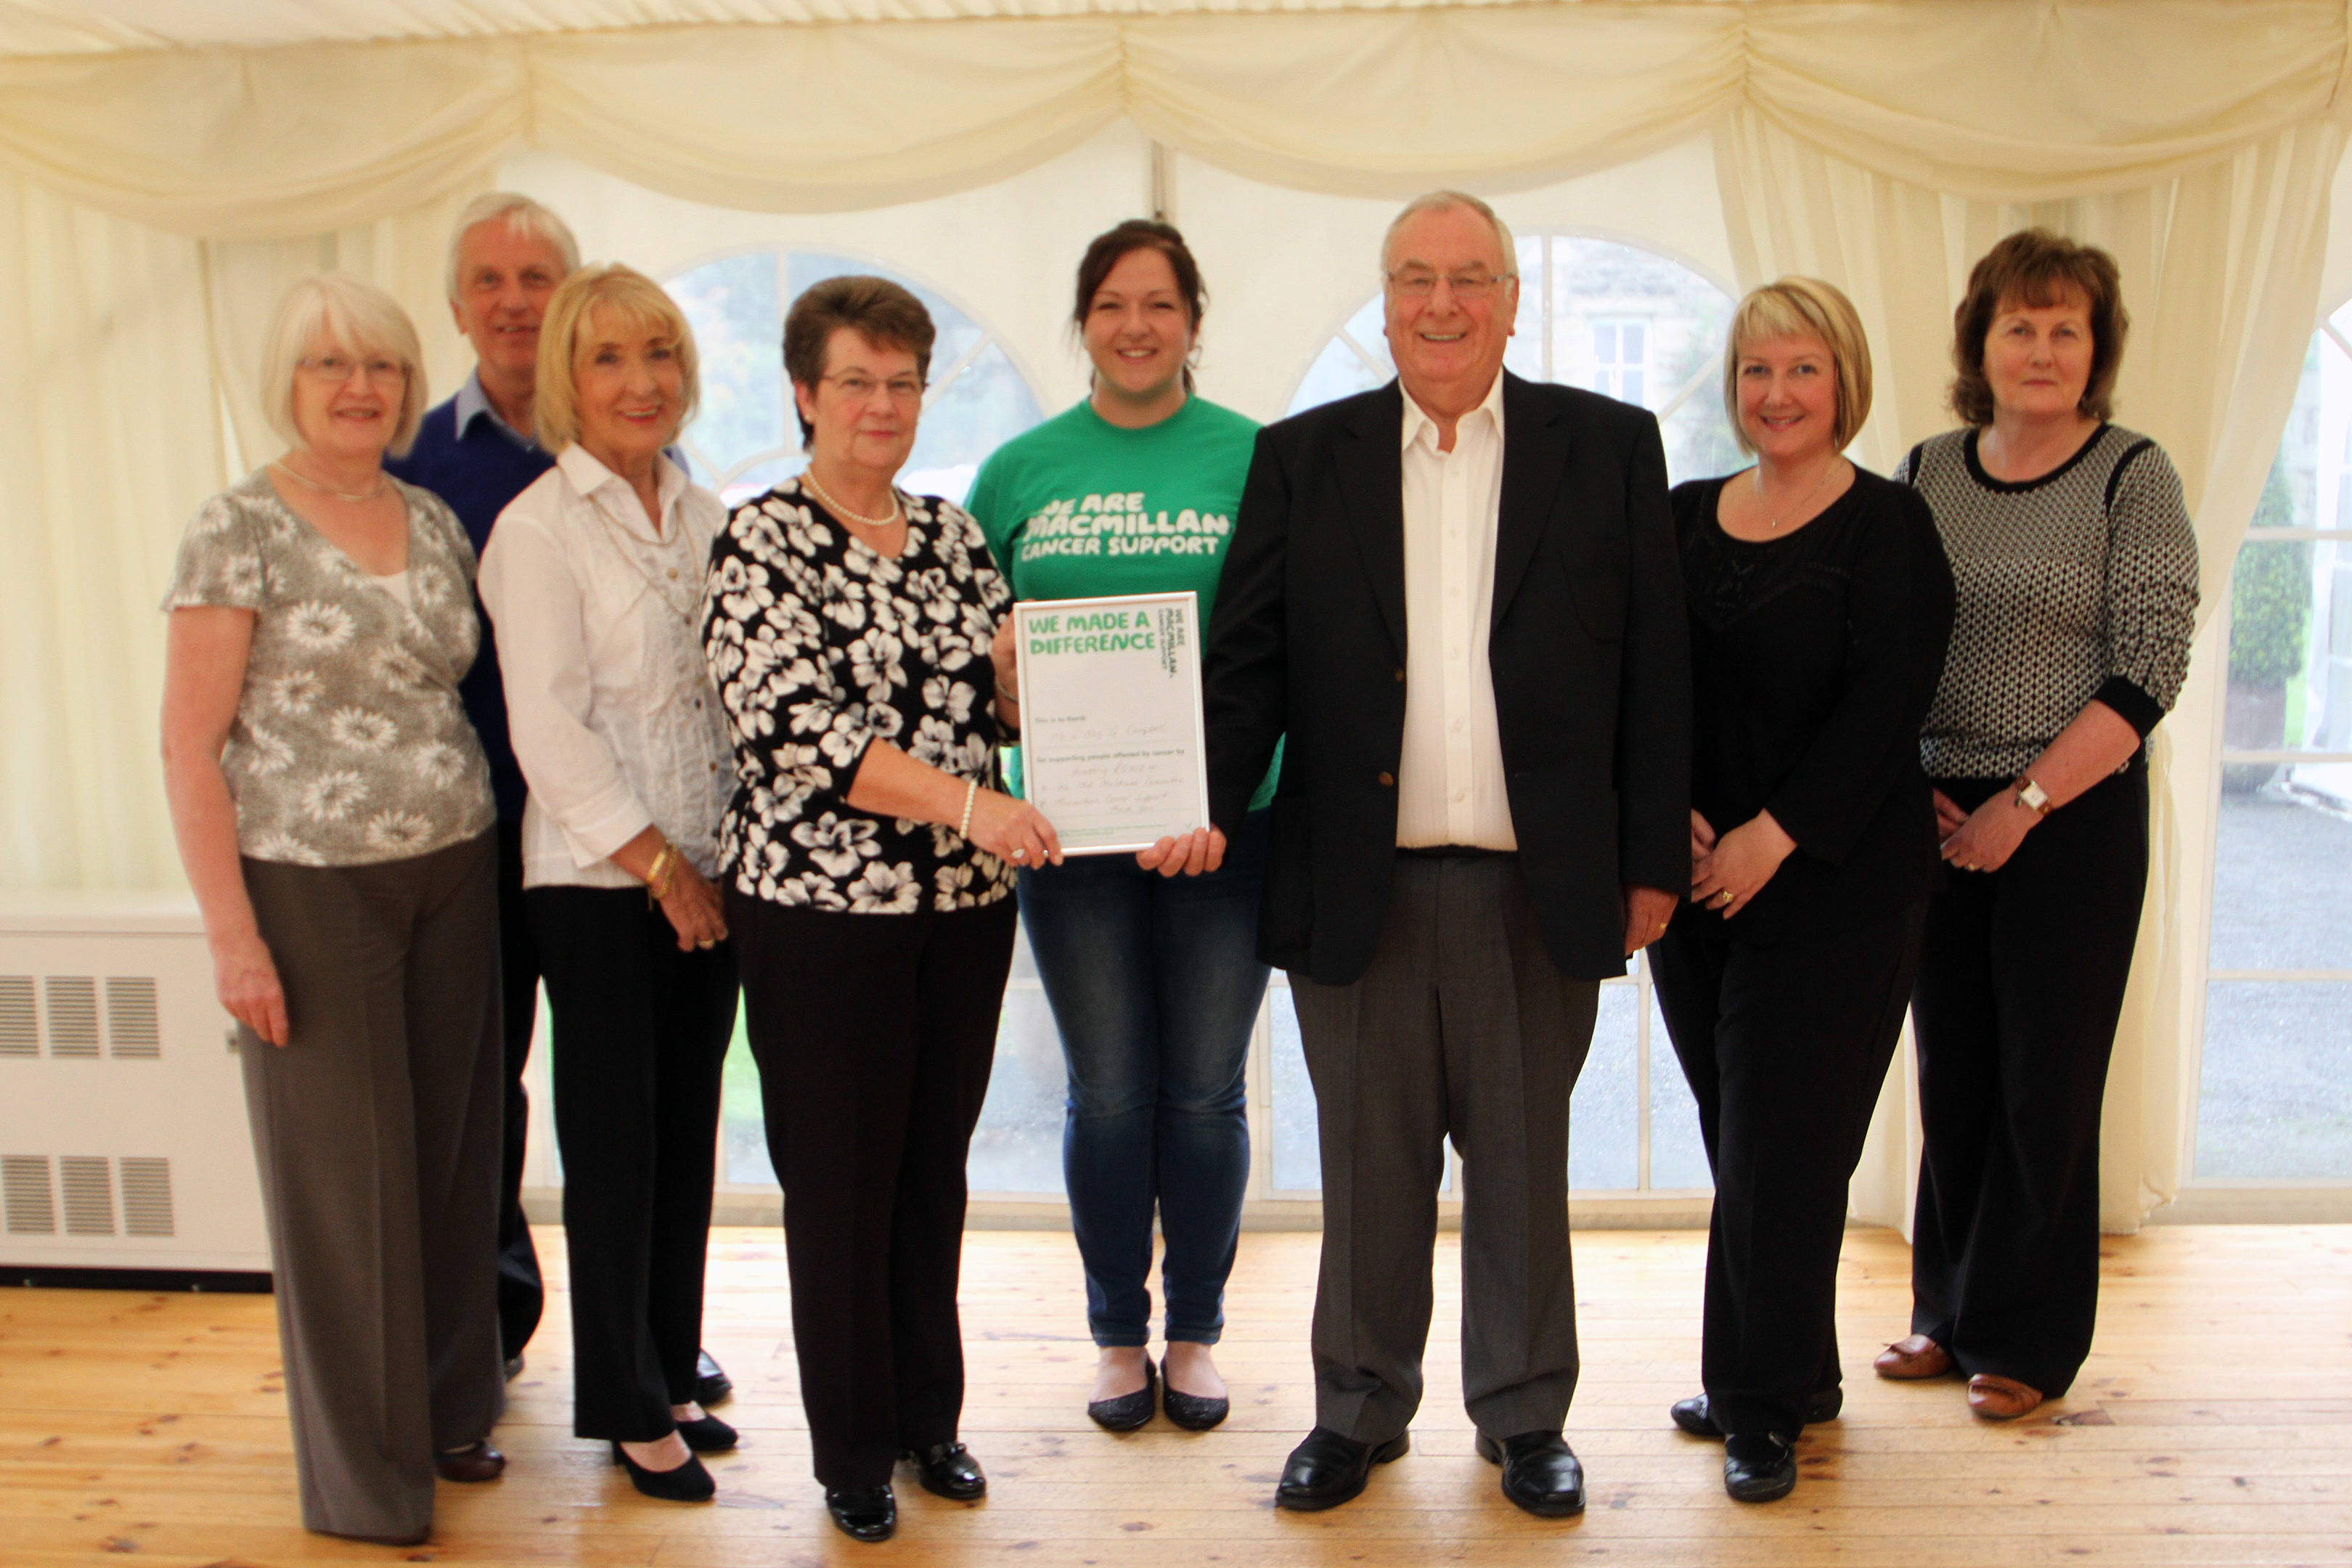 Meg and Gordon Campbell raised nearly £6,000 for Macmillan Cancer Support at their golden wedding anniversary party